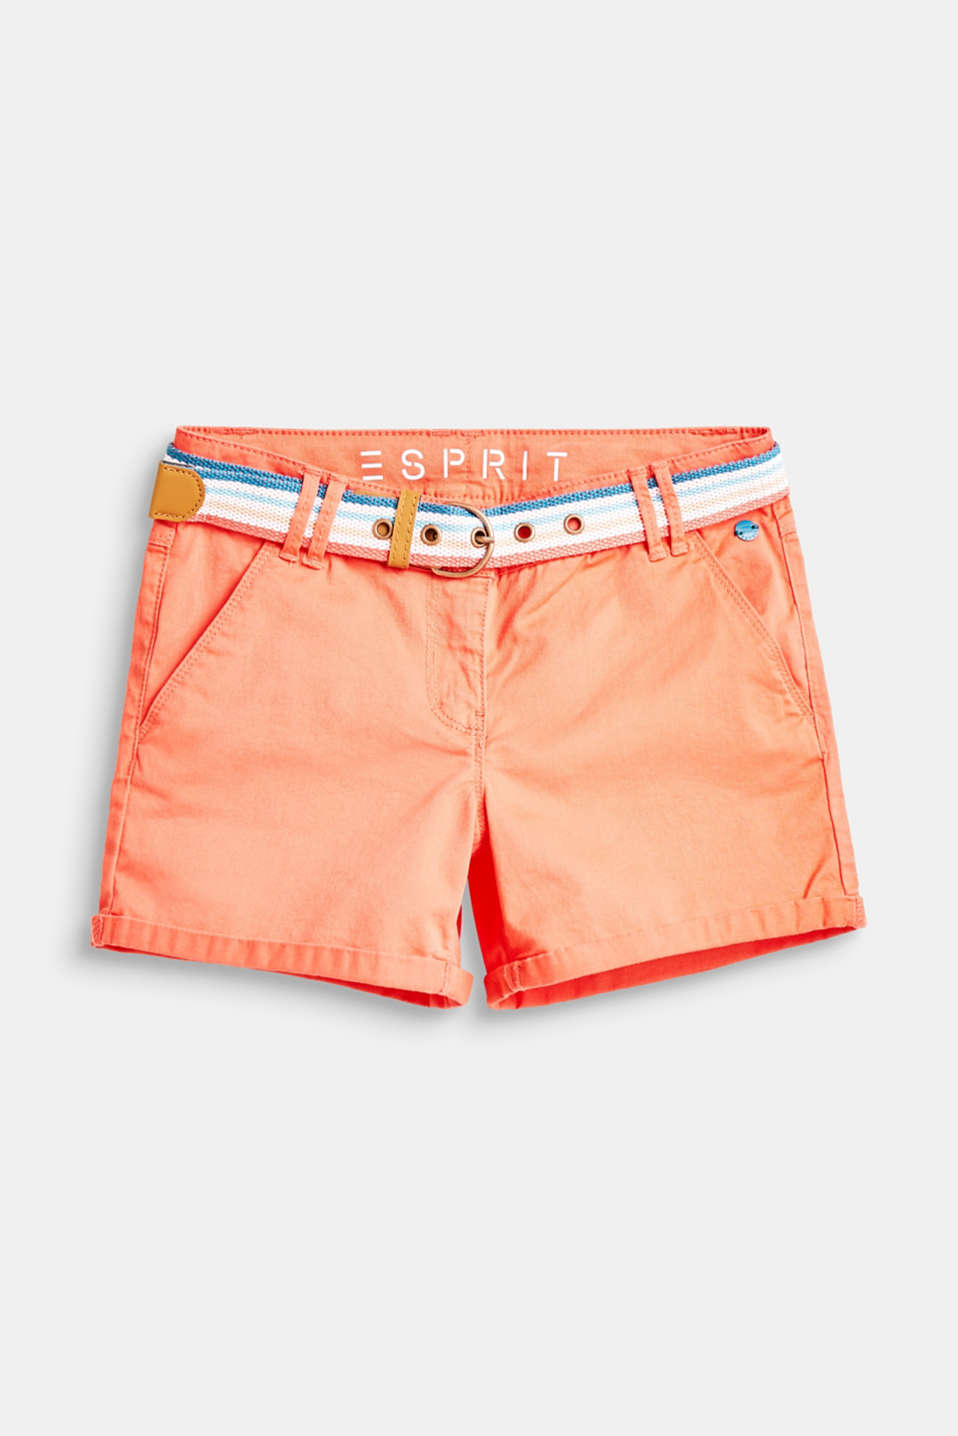 Esprit - Cotton shorts with belt and adjustable waistband